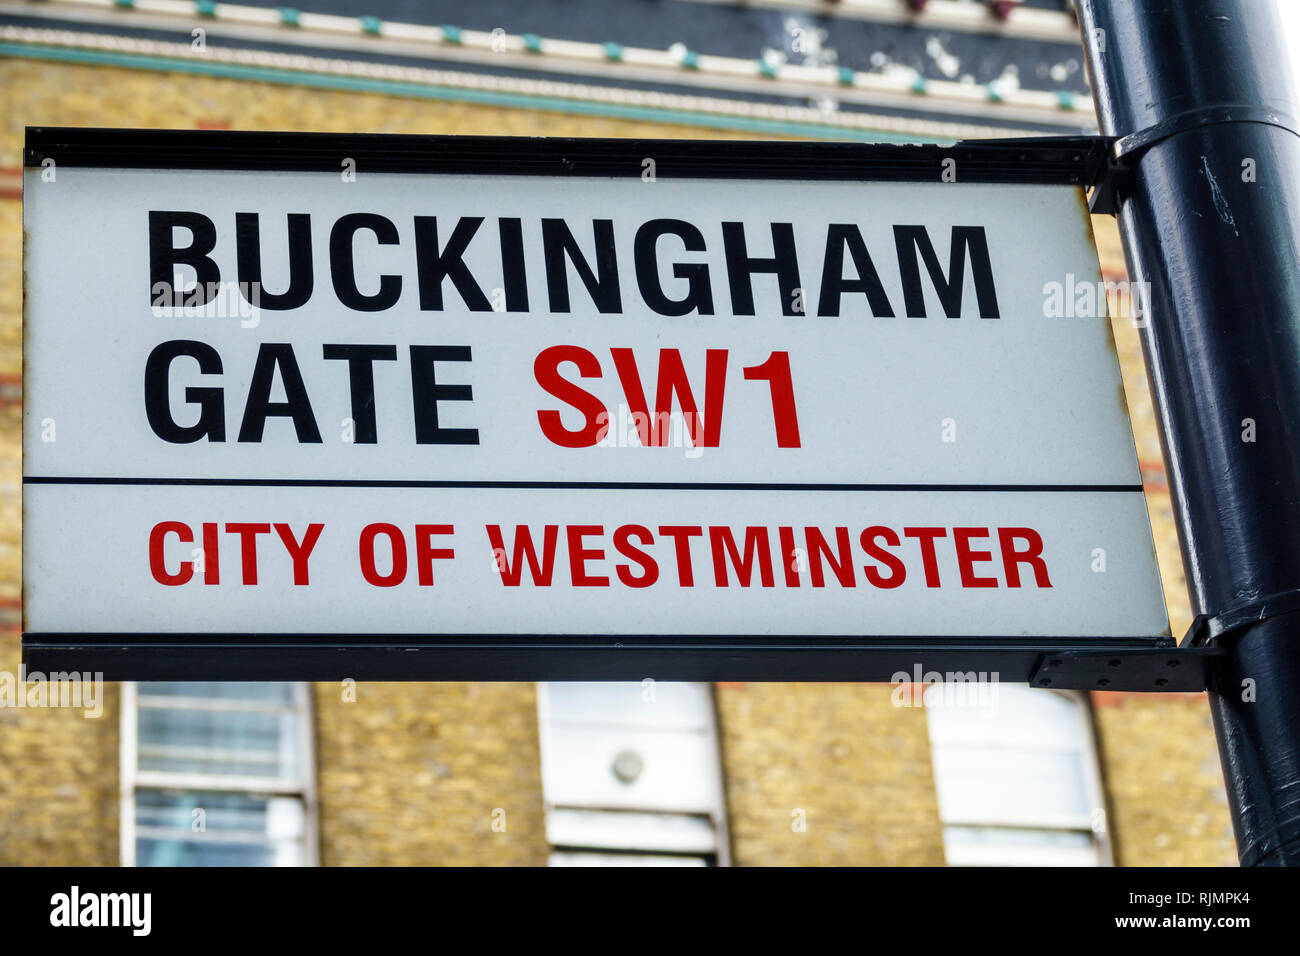 Royaume-uni Grande-Bretagne Angleterre London City of westminster Buckingham Gate SW1 de emplacement rue Photo Stock